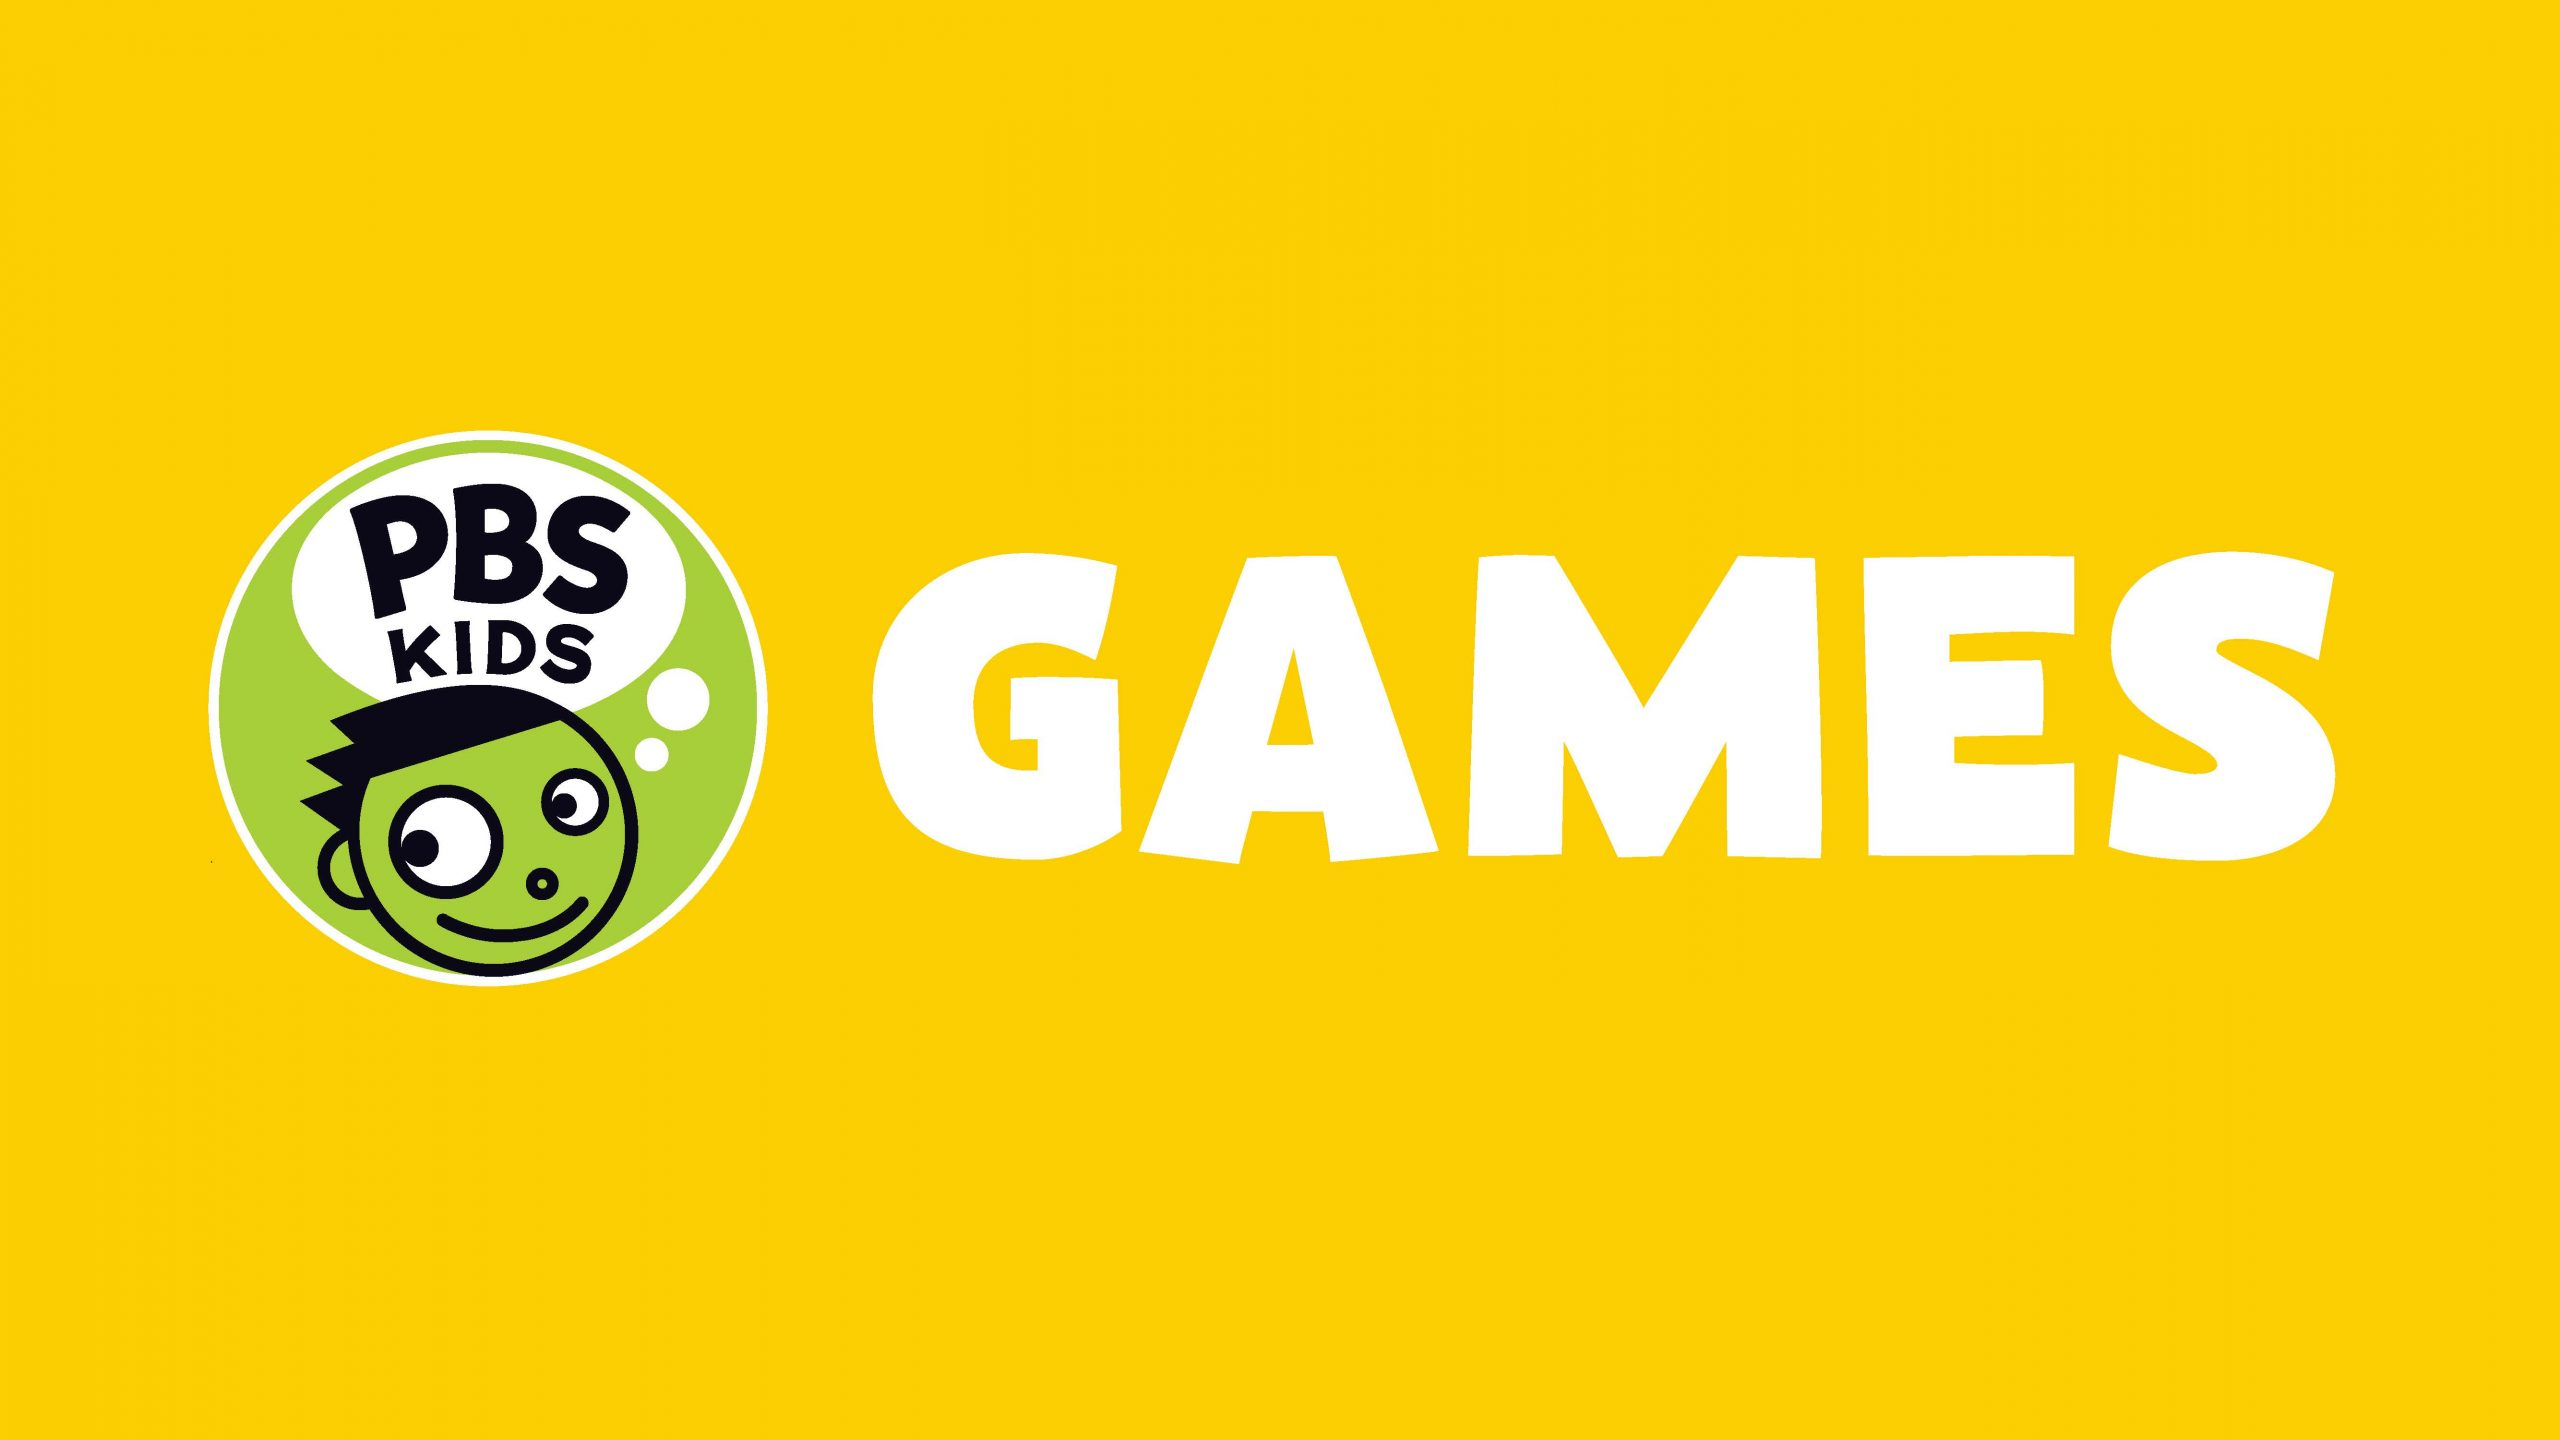 PBS KIDS logo with the word GAMES on a yellow background.